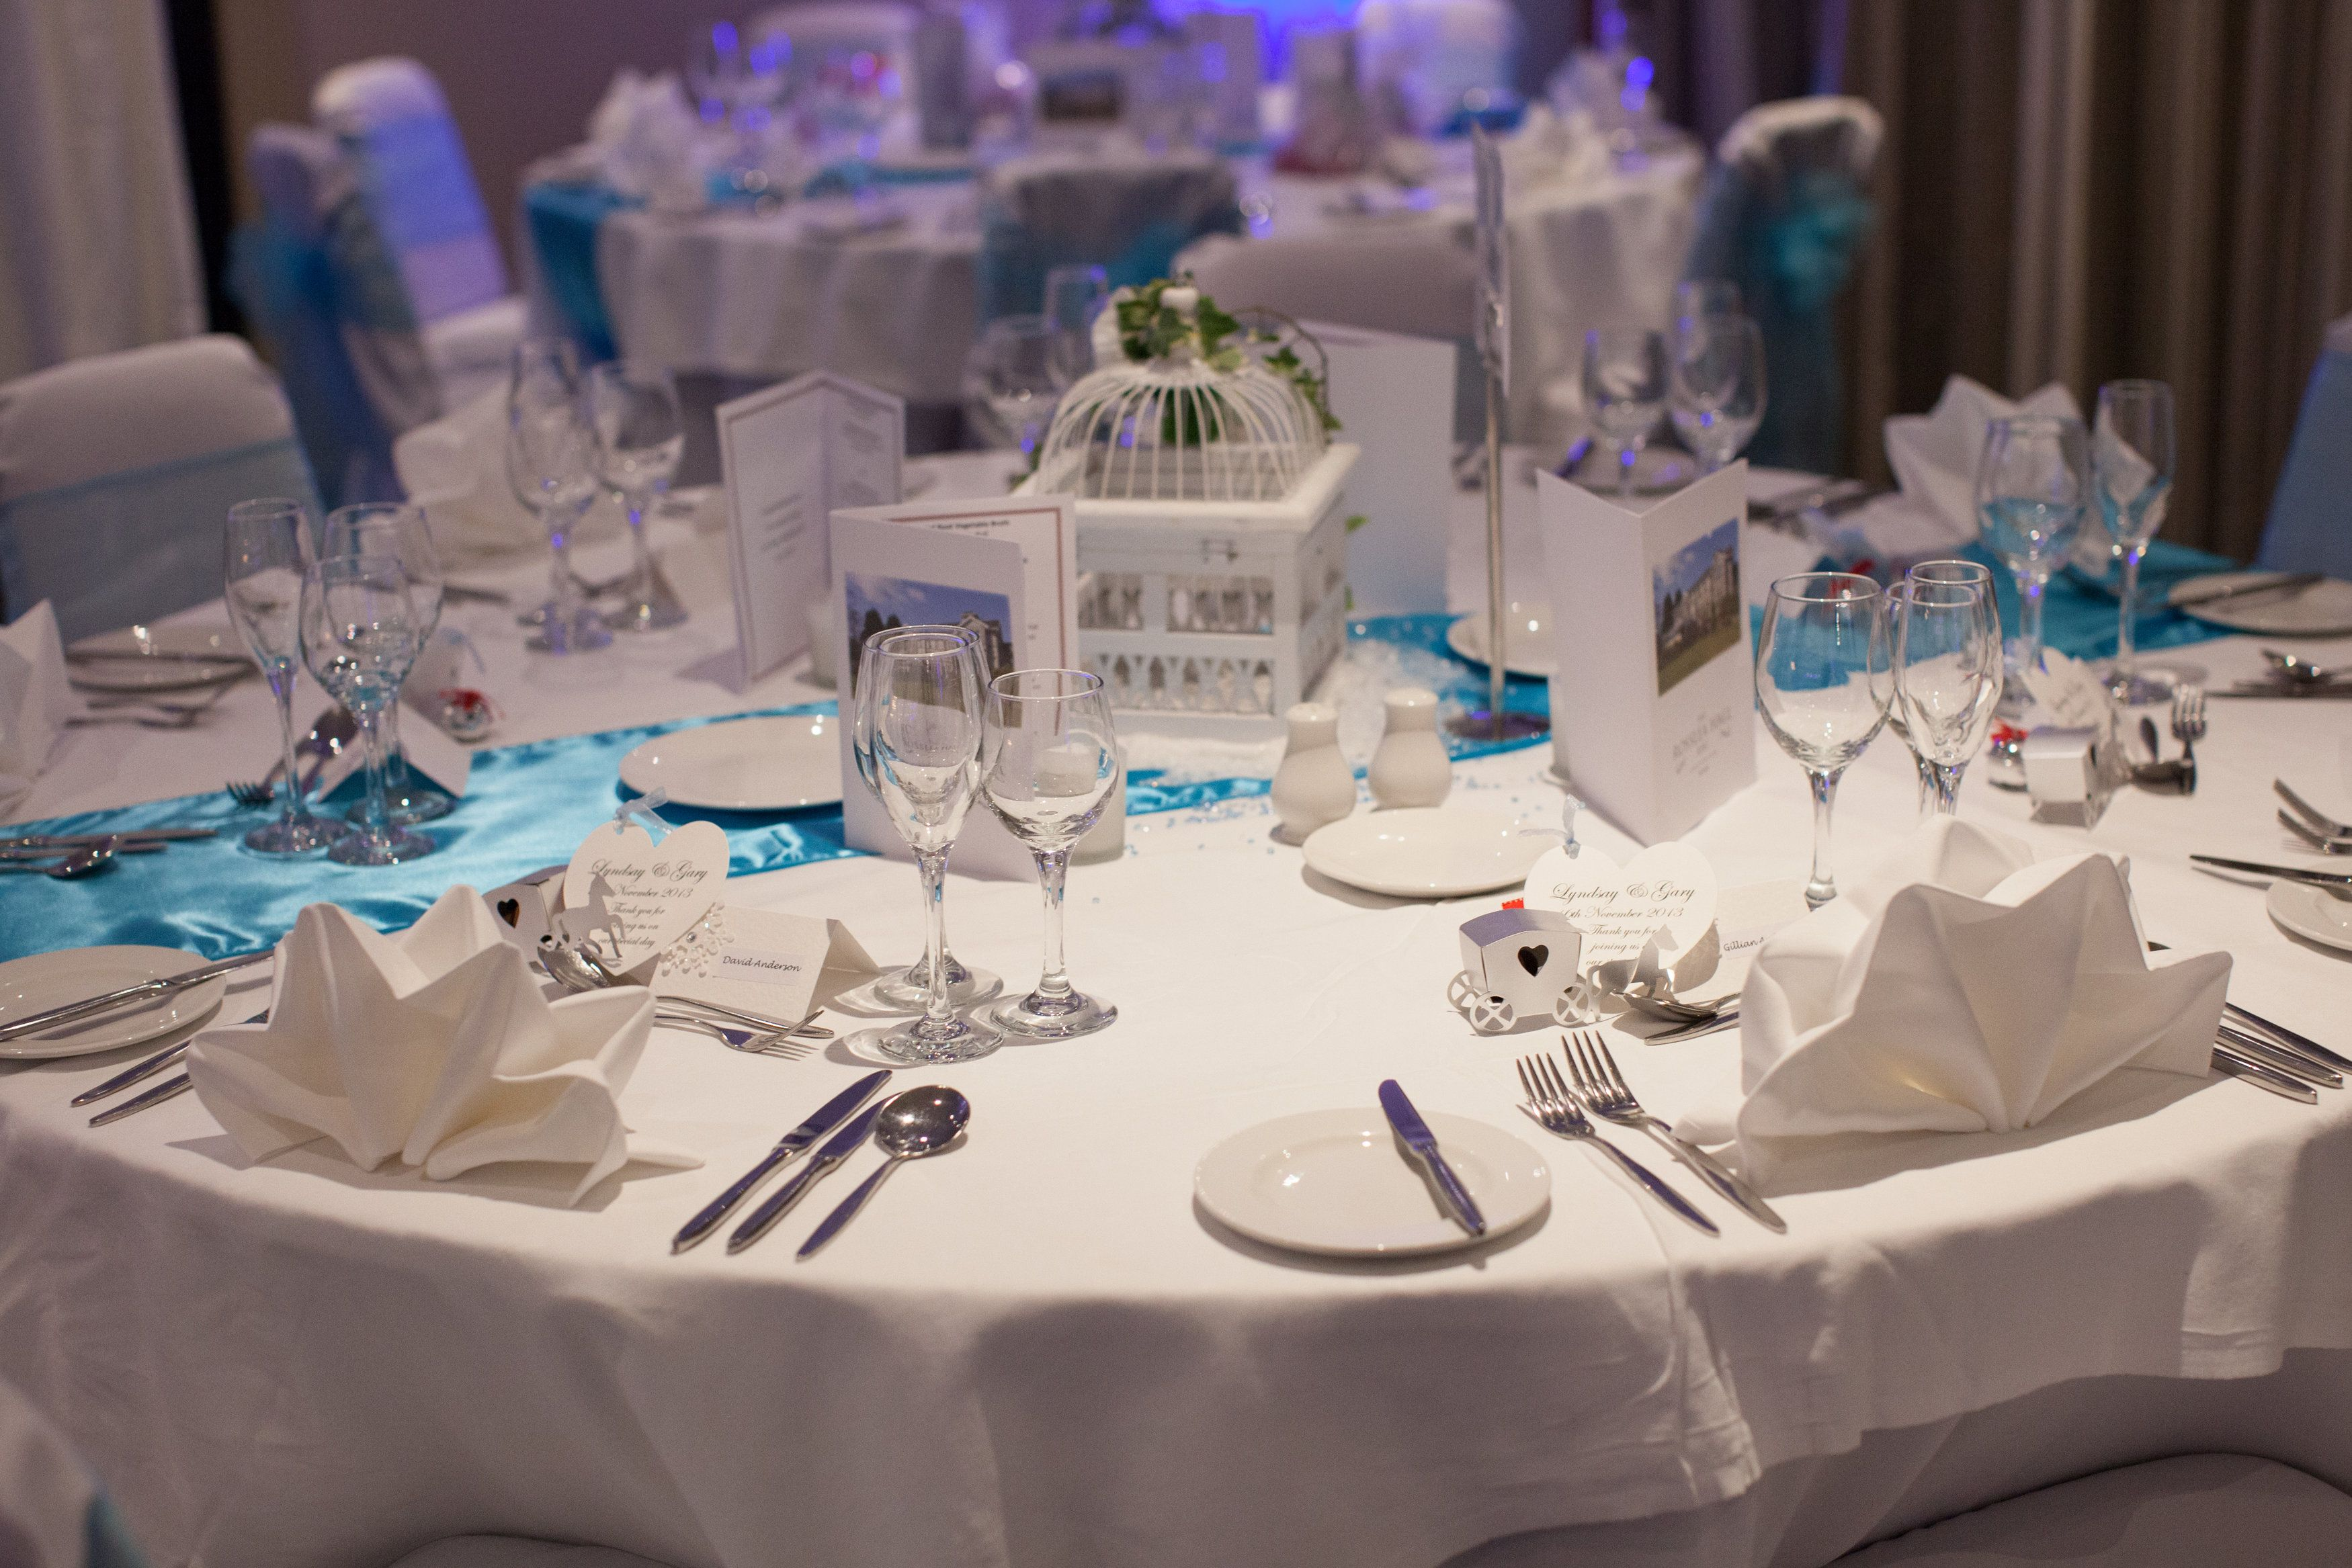 Winter Wonderland table setting at Rosslea Hall Hotel & Winter Wonderland table setting at Rosslea Hall Hotel | Winter ...